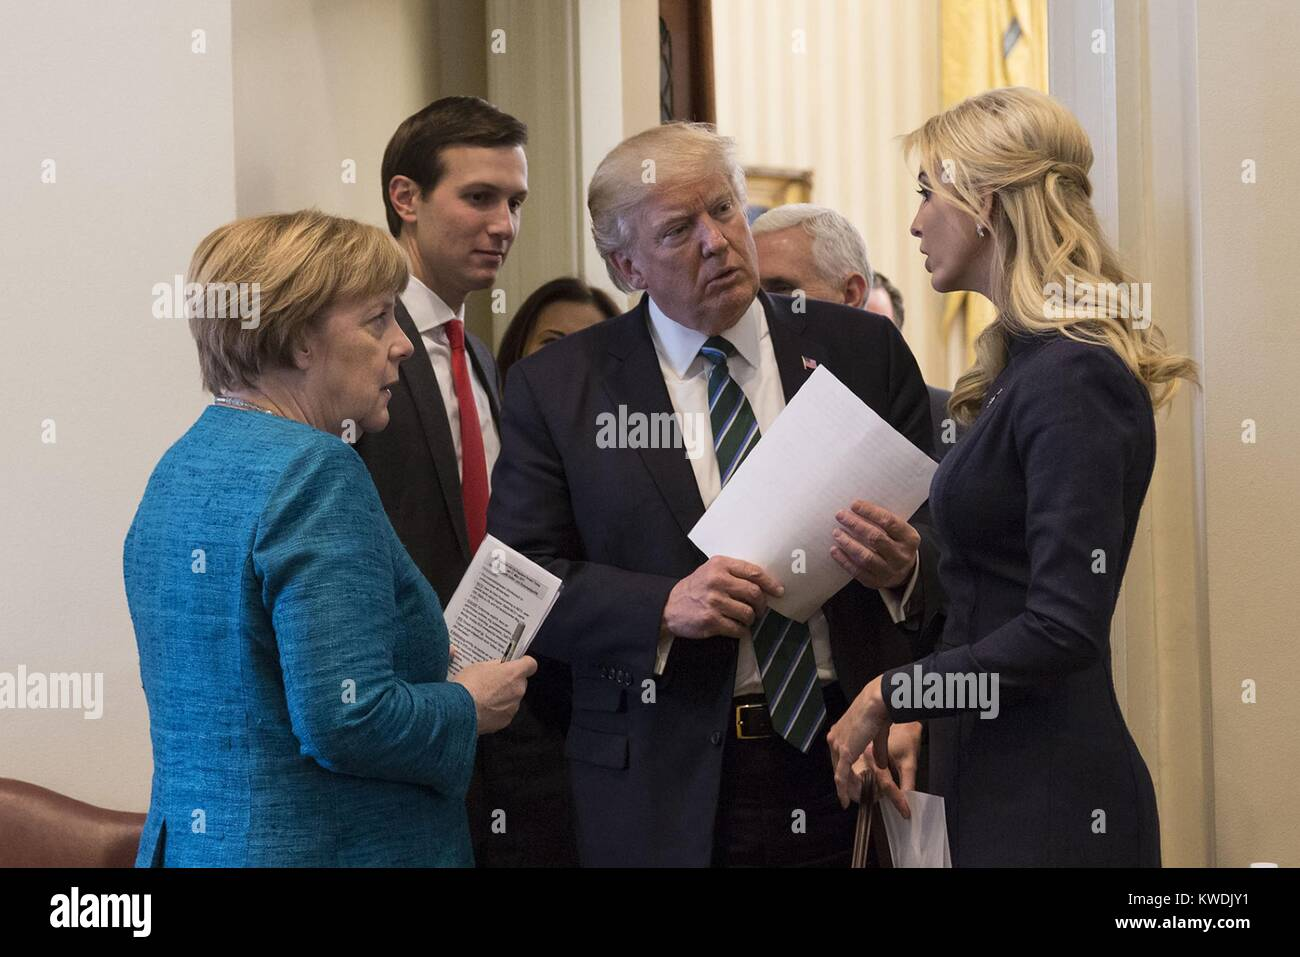 President Donald Trump talks with German Chancellor Angela Merkel, Friday, March 17, 2017. They are joined by Senior - Stock Image